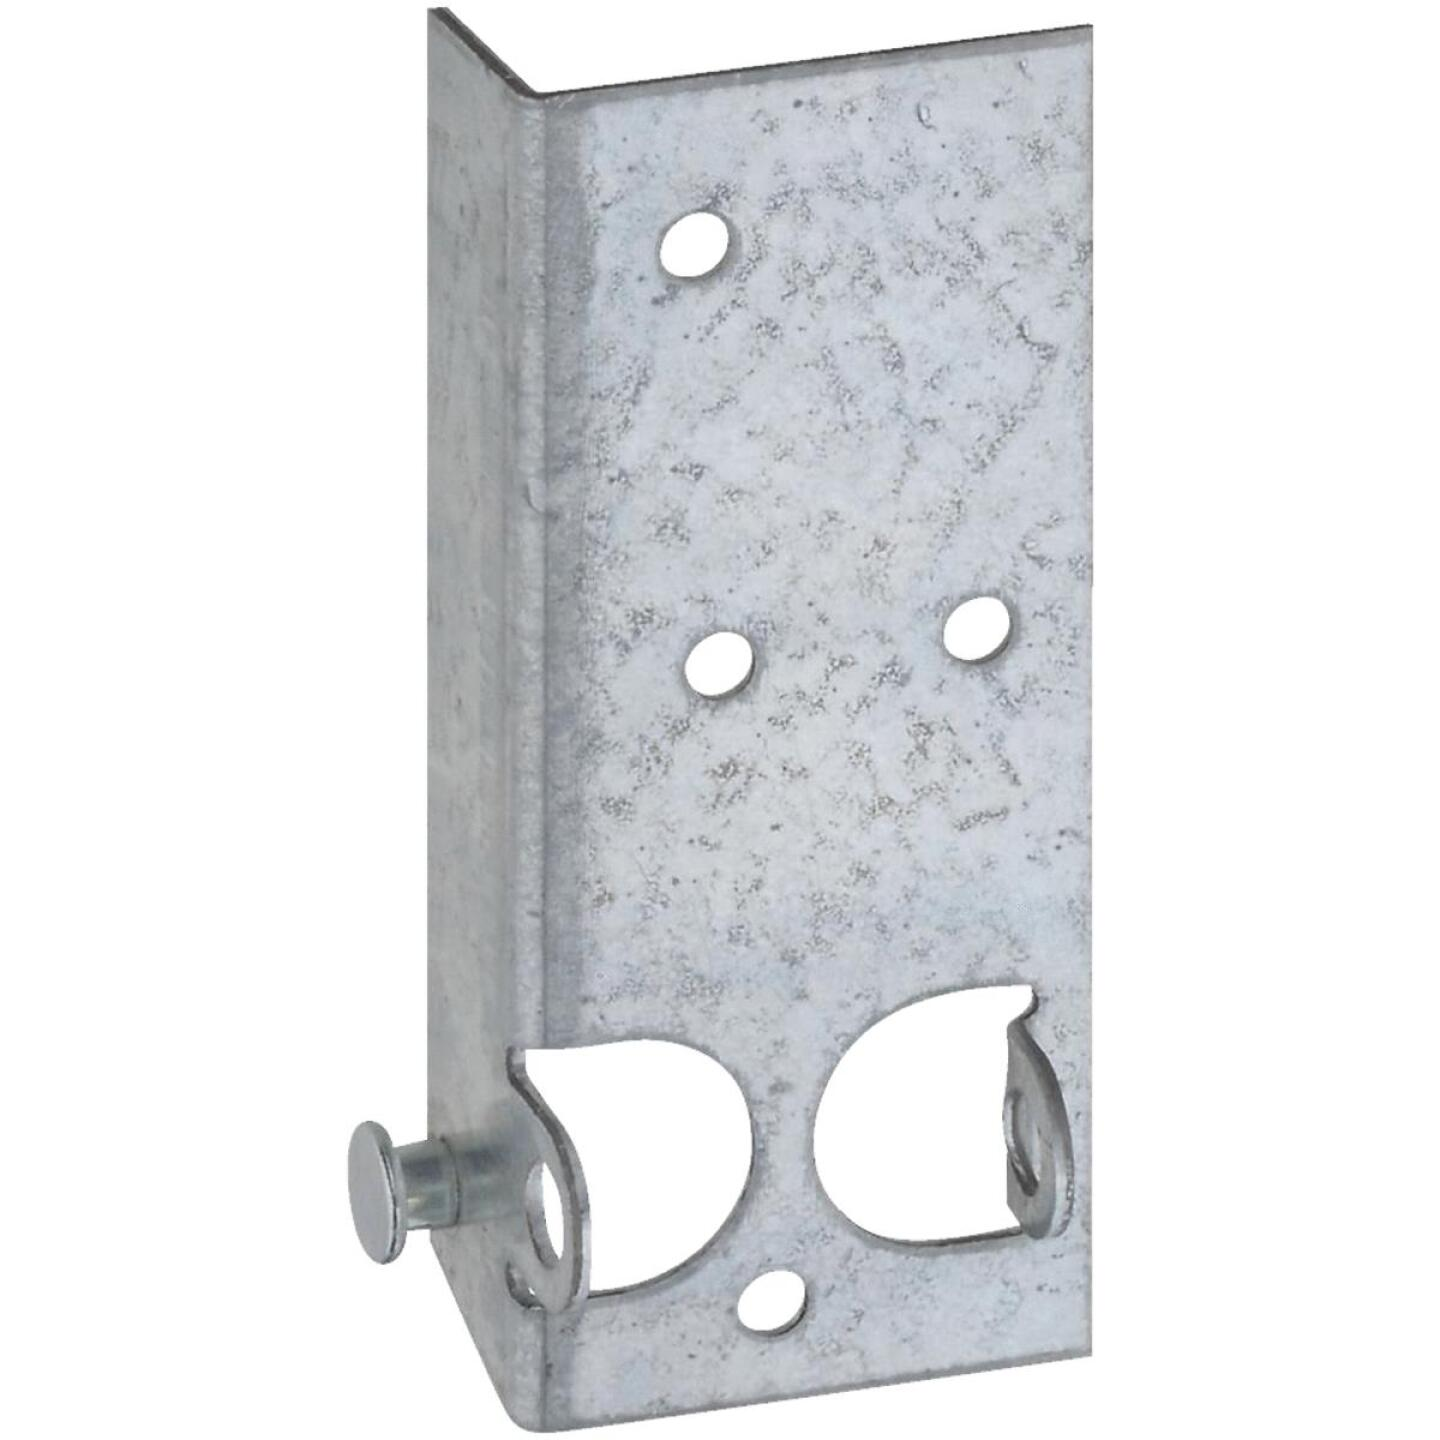 National Galvanized Steel Right & Left Hand Bottom Lift & Roller Bracket For Wood & Metal Garage Door Image 1